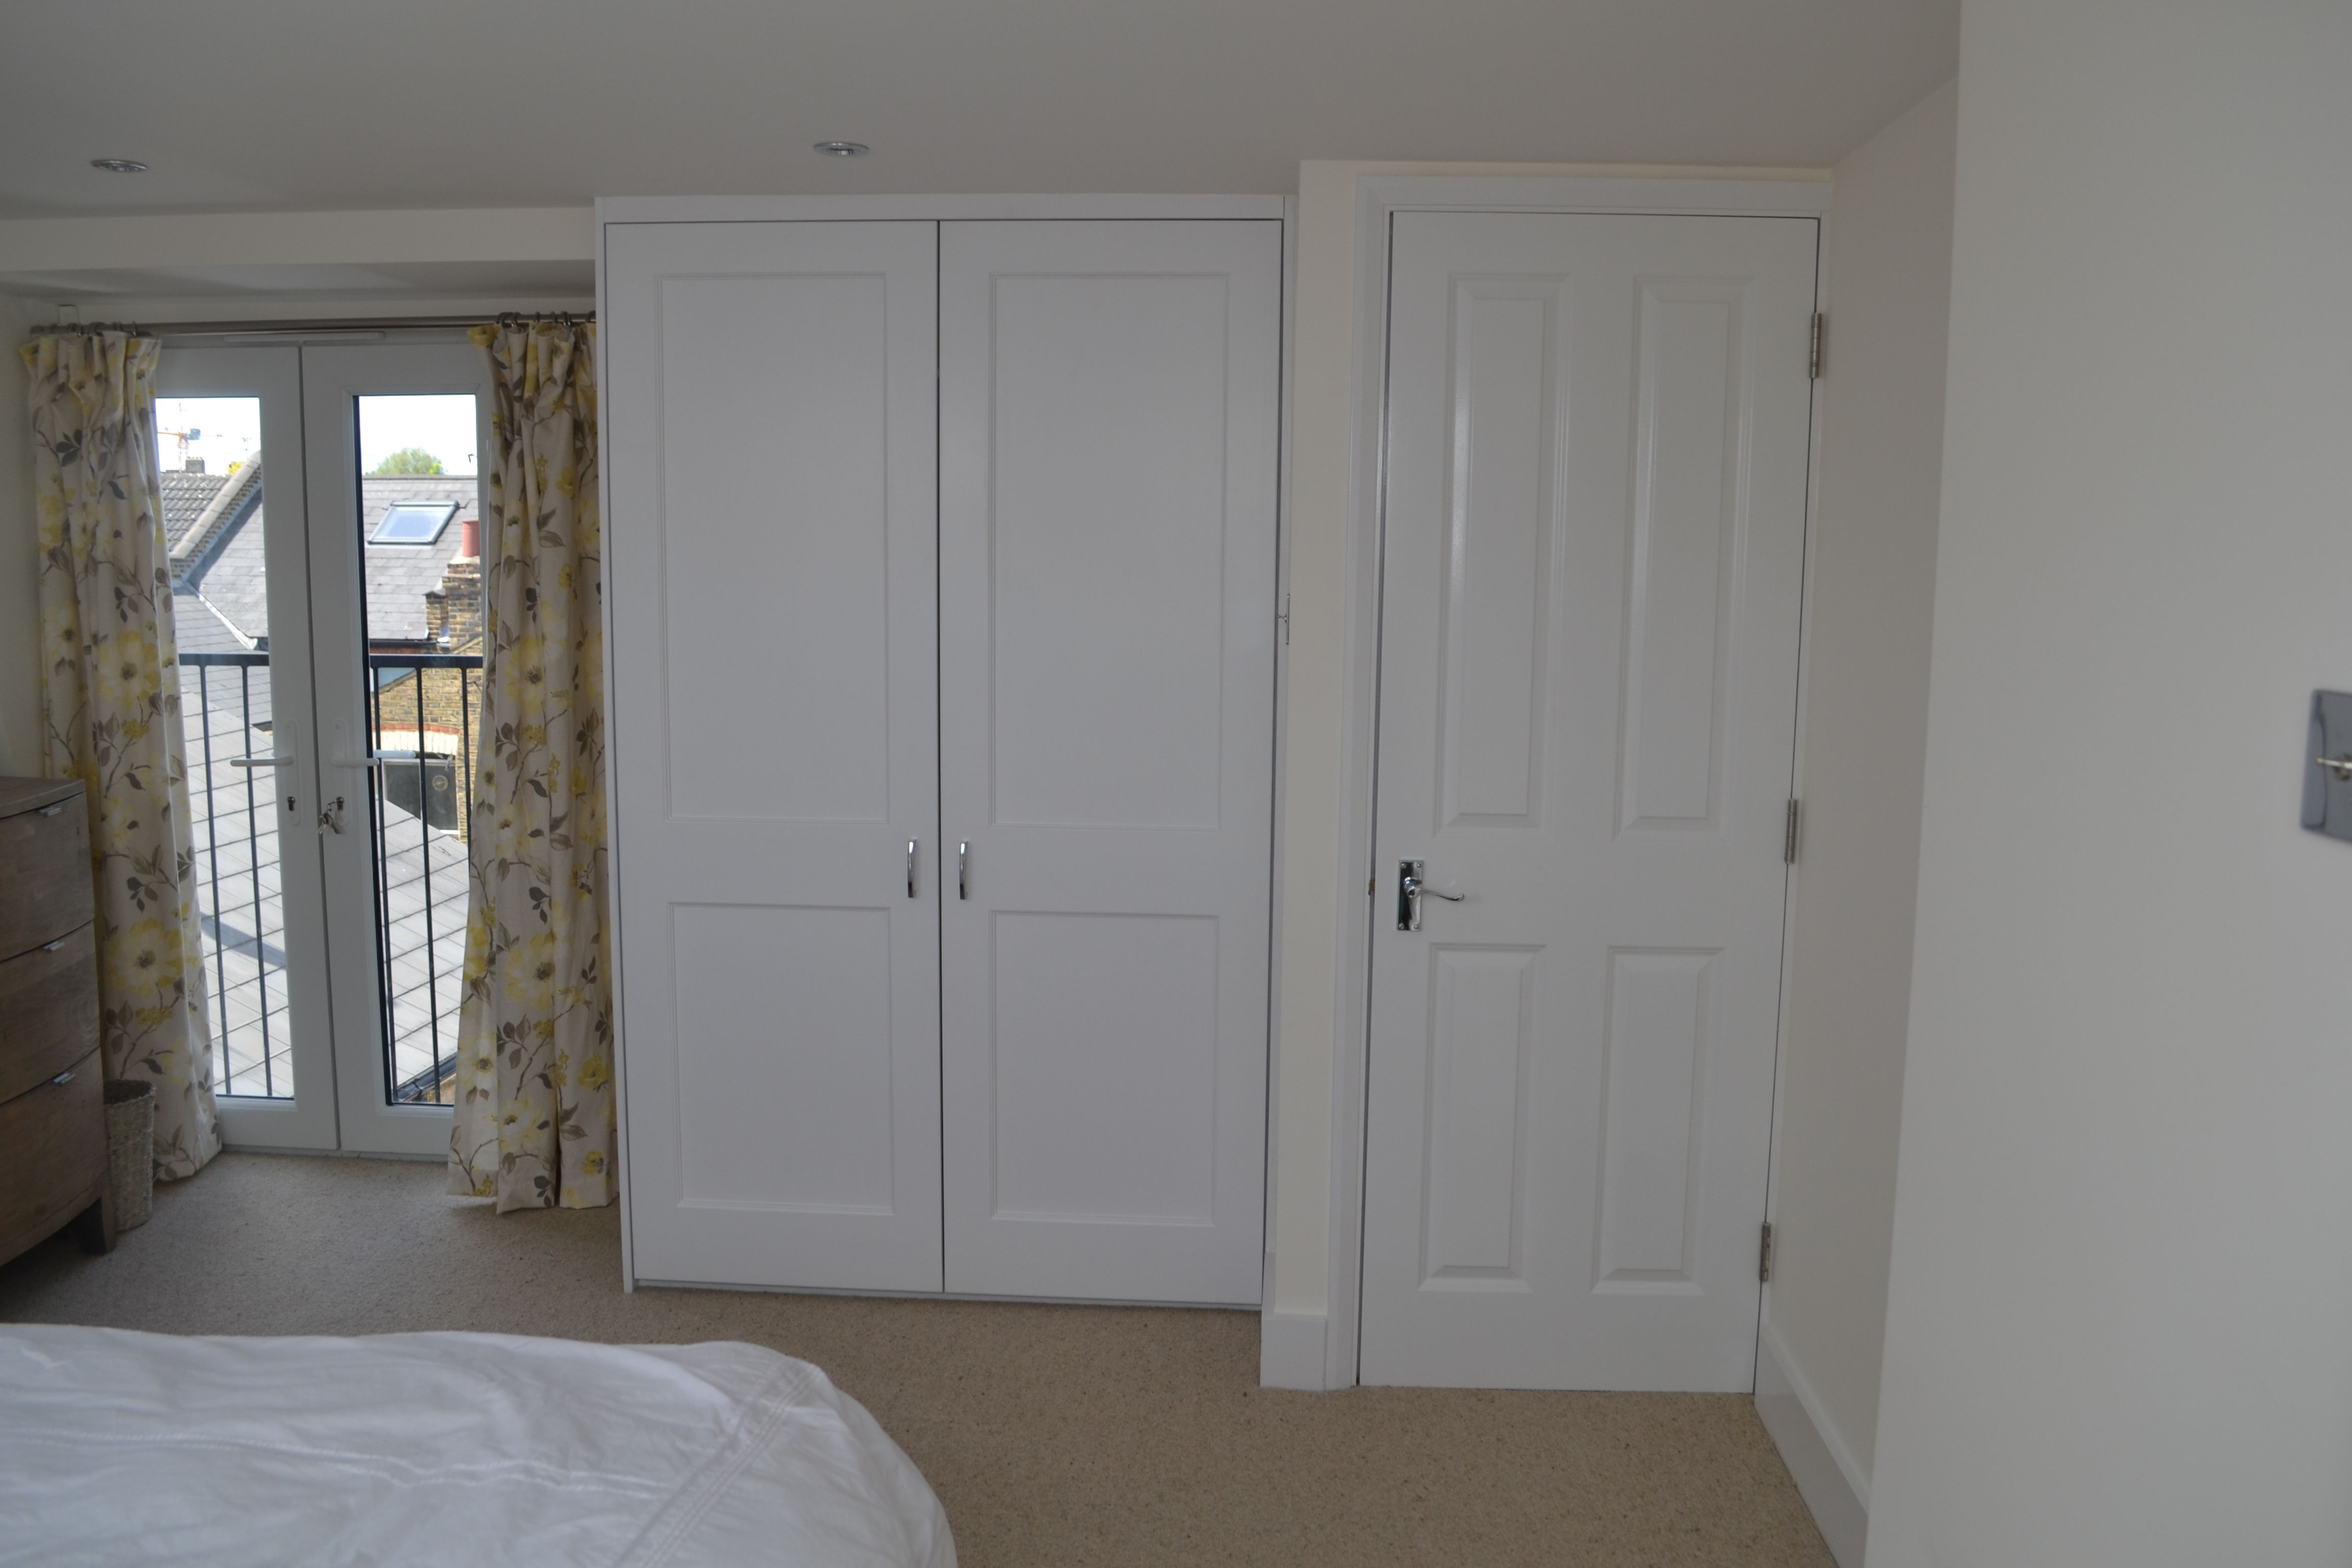 A full width L shaped rear mansard conversion into 2 bedrooms and 1 en-suite